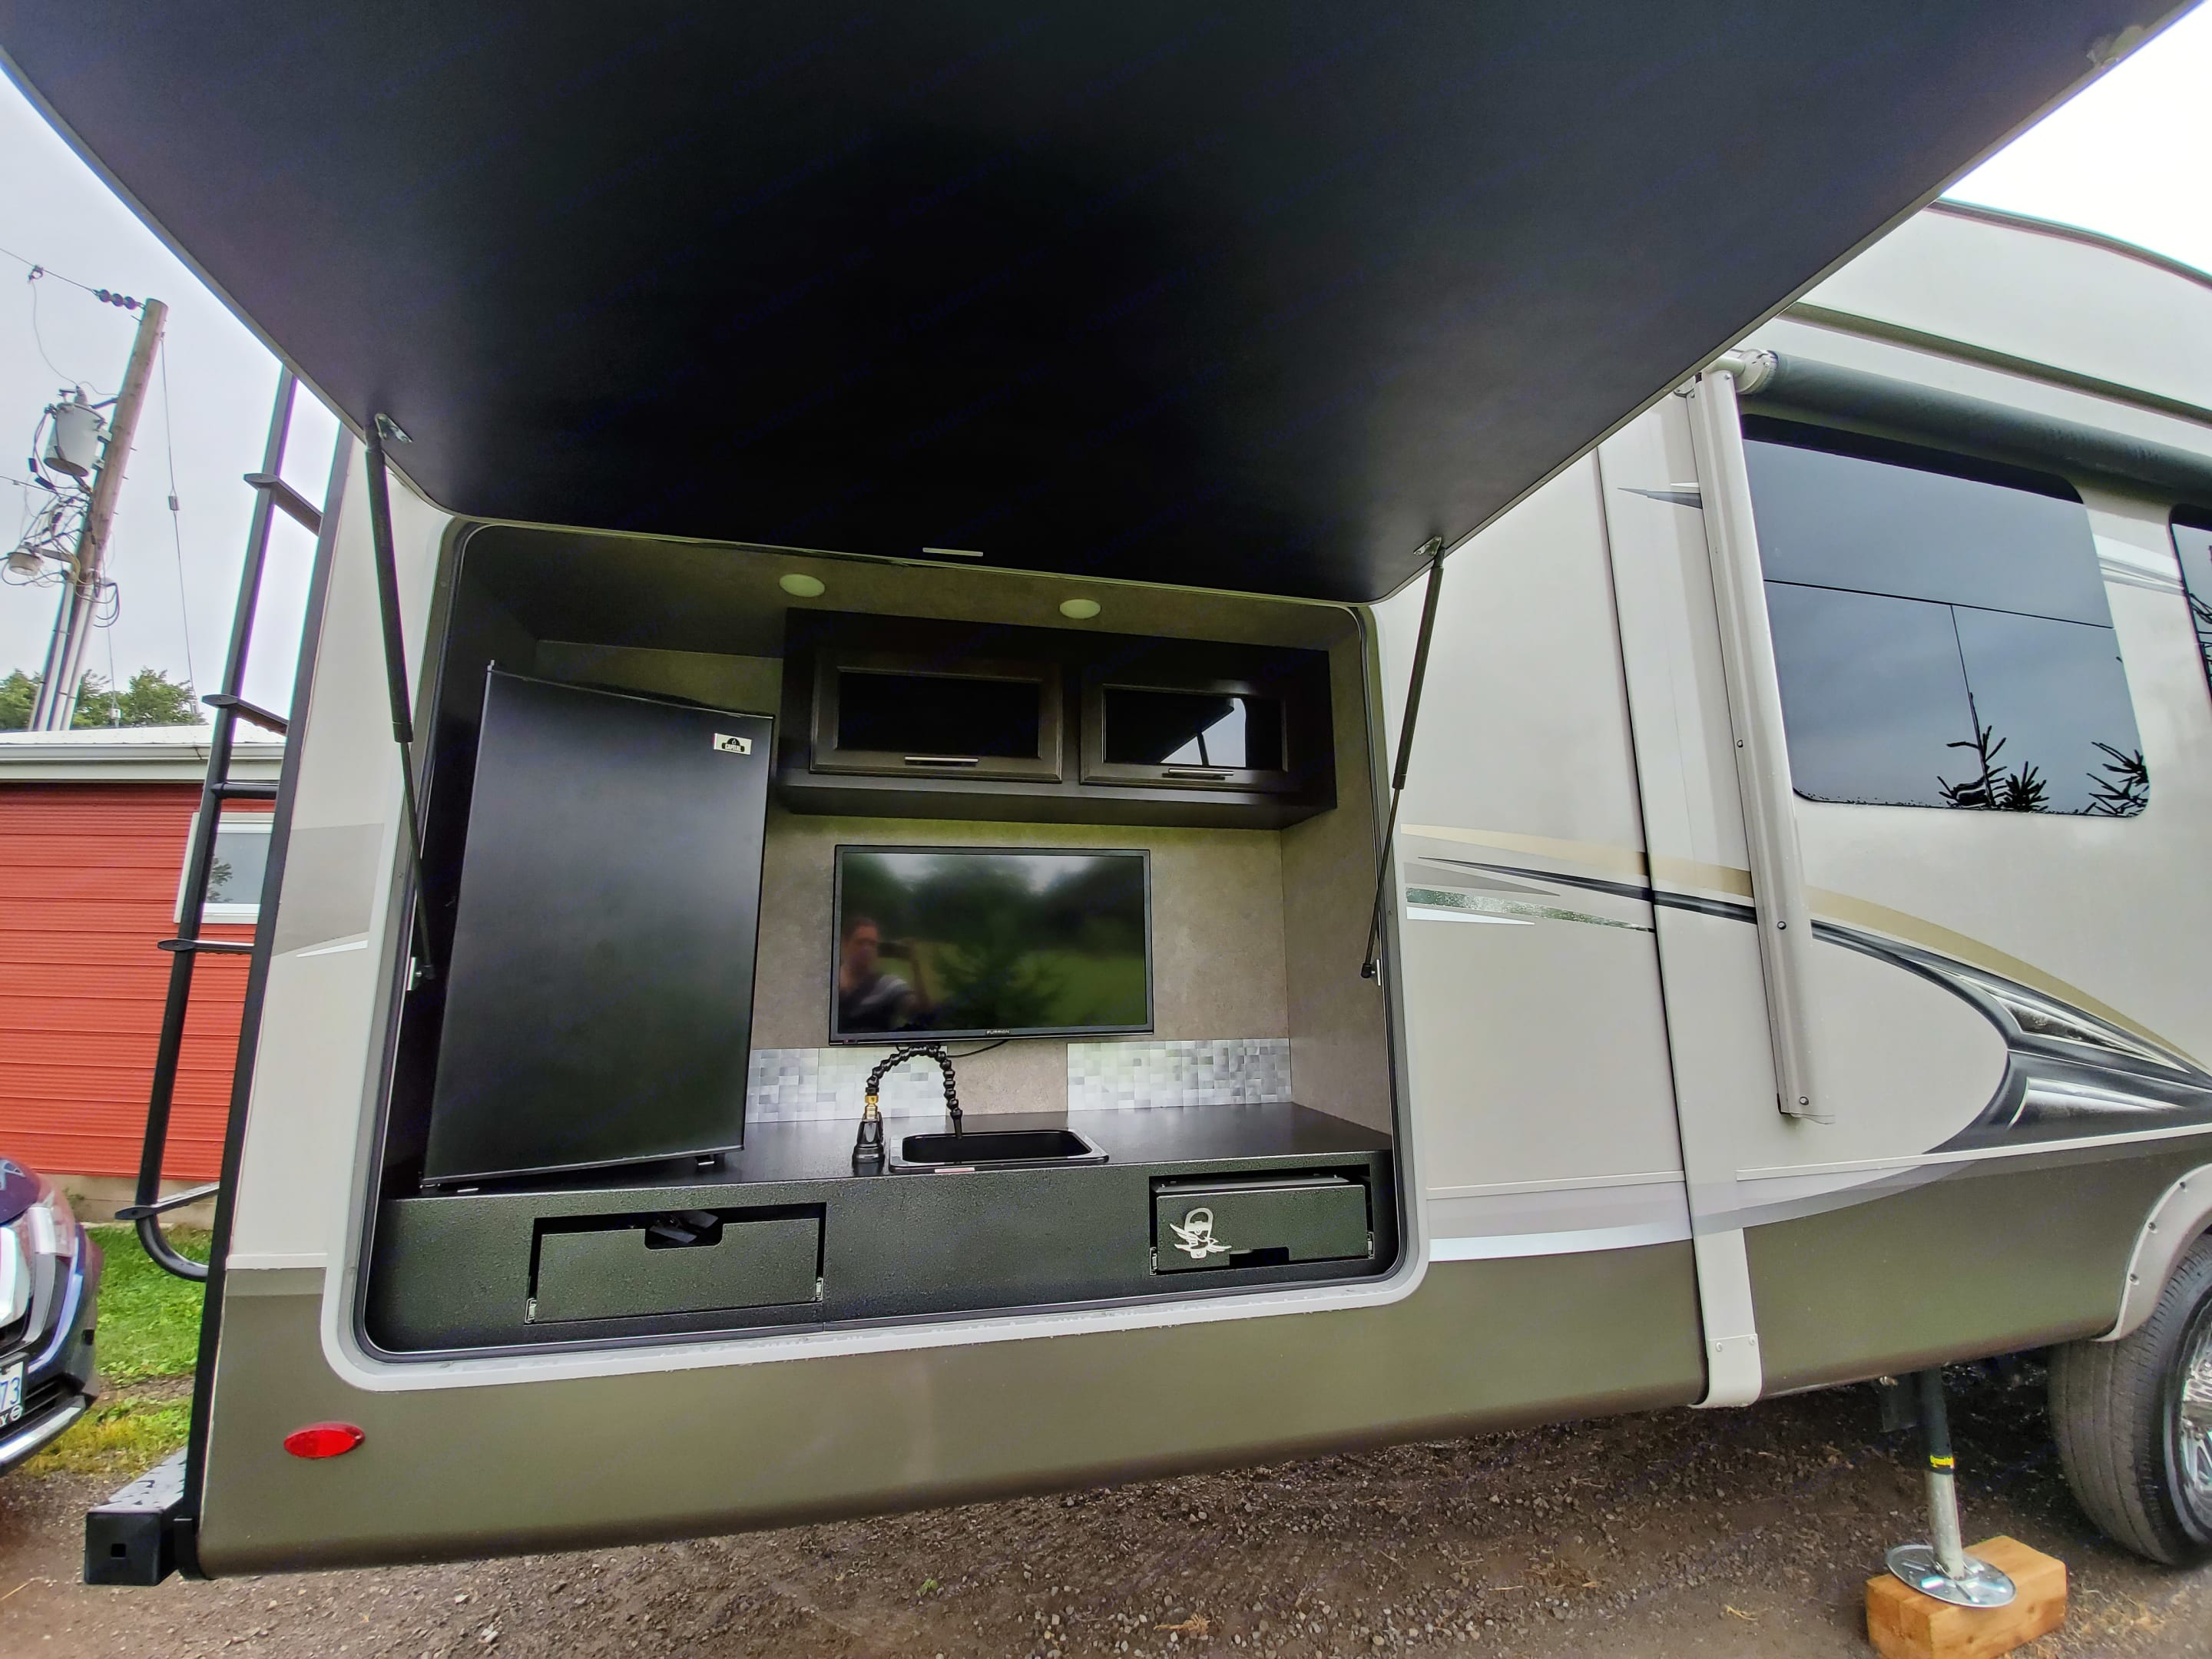 Outdoor kitchen equipped with: bar fridge, storage, sink, TV and grill. Jayco Eagle 347BHOK 2018